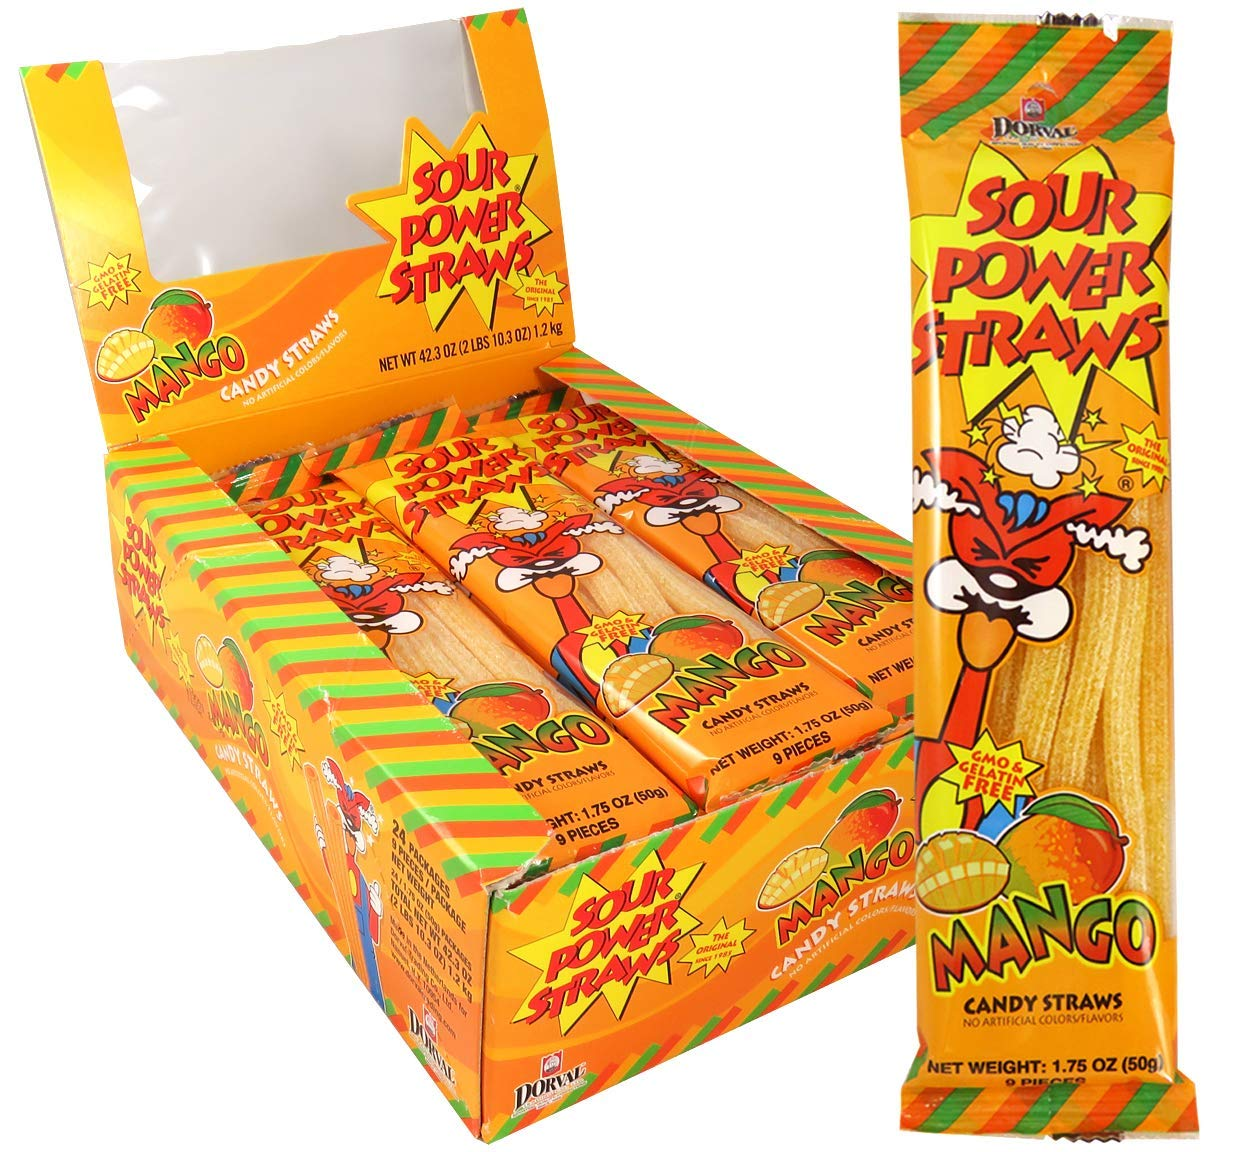 Dorval Sour Power Mango Candy Straws, 1.75 Ounce - Display Box of 24 Count by Dorval